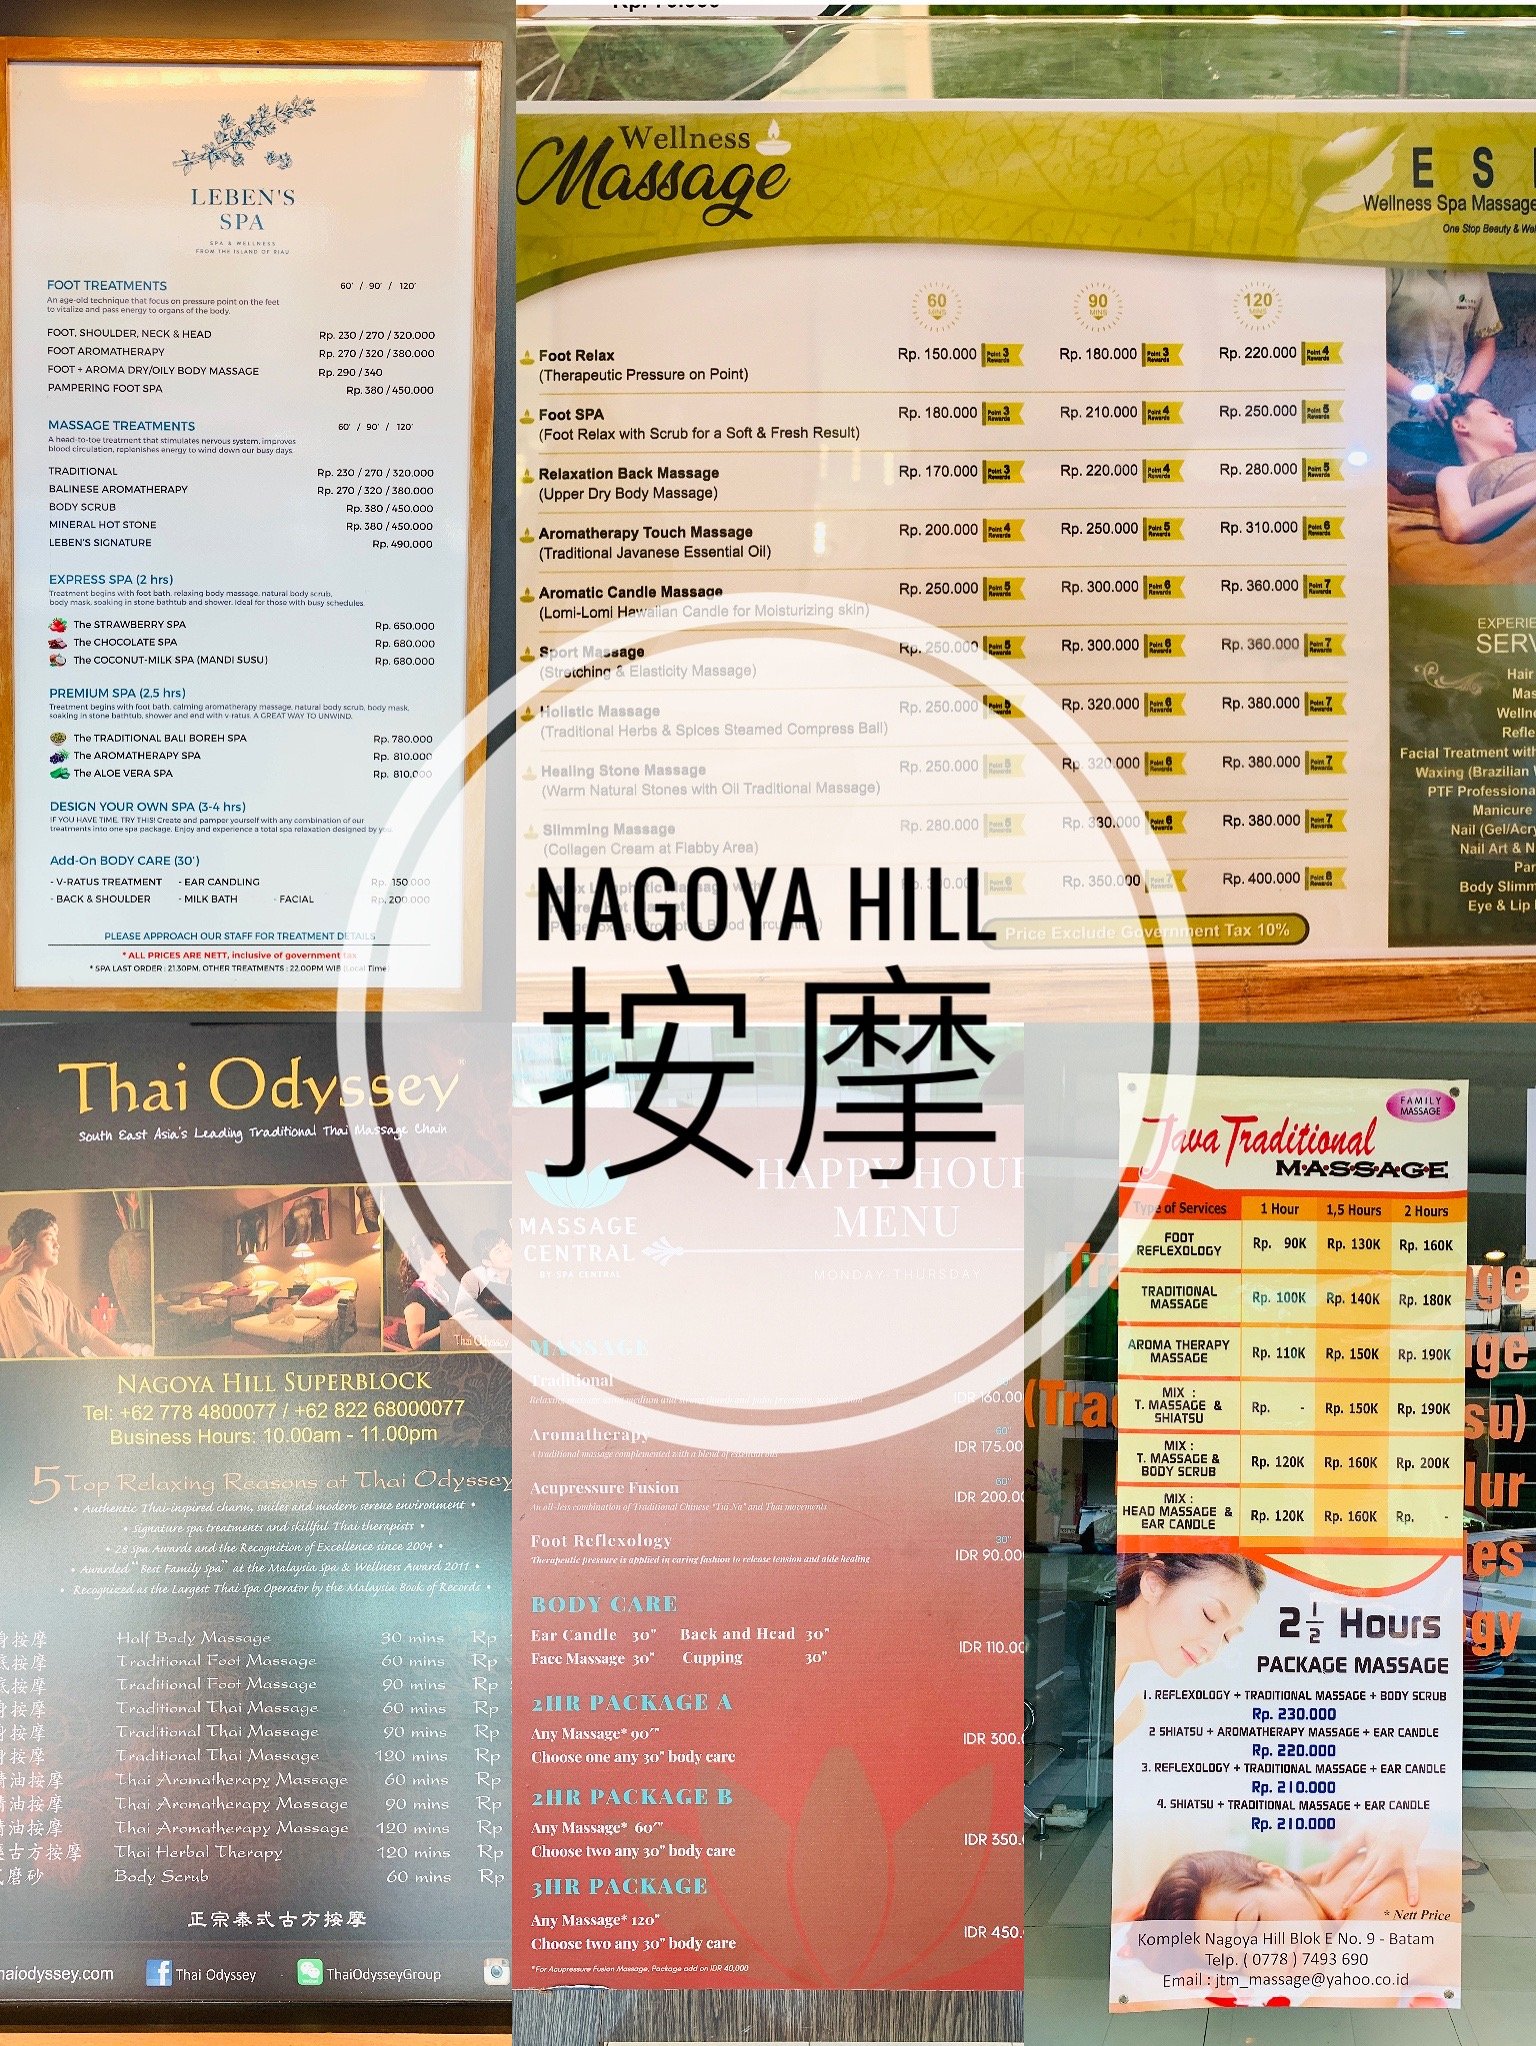 Nagoya Hill Massage Nagoya Hill 按摩 7